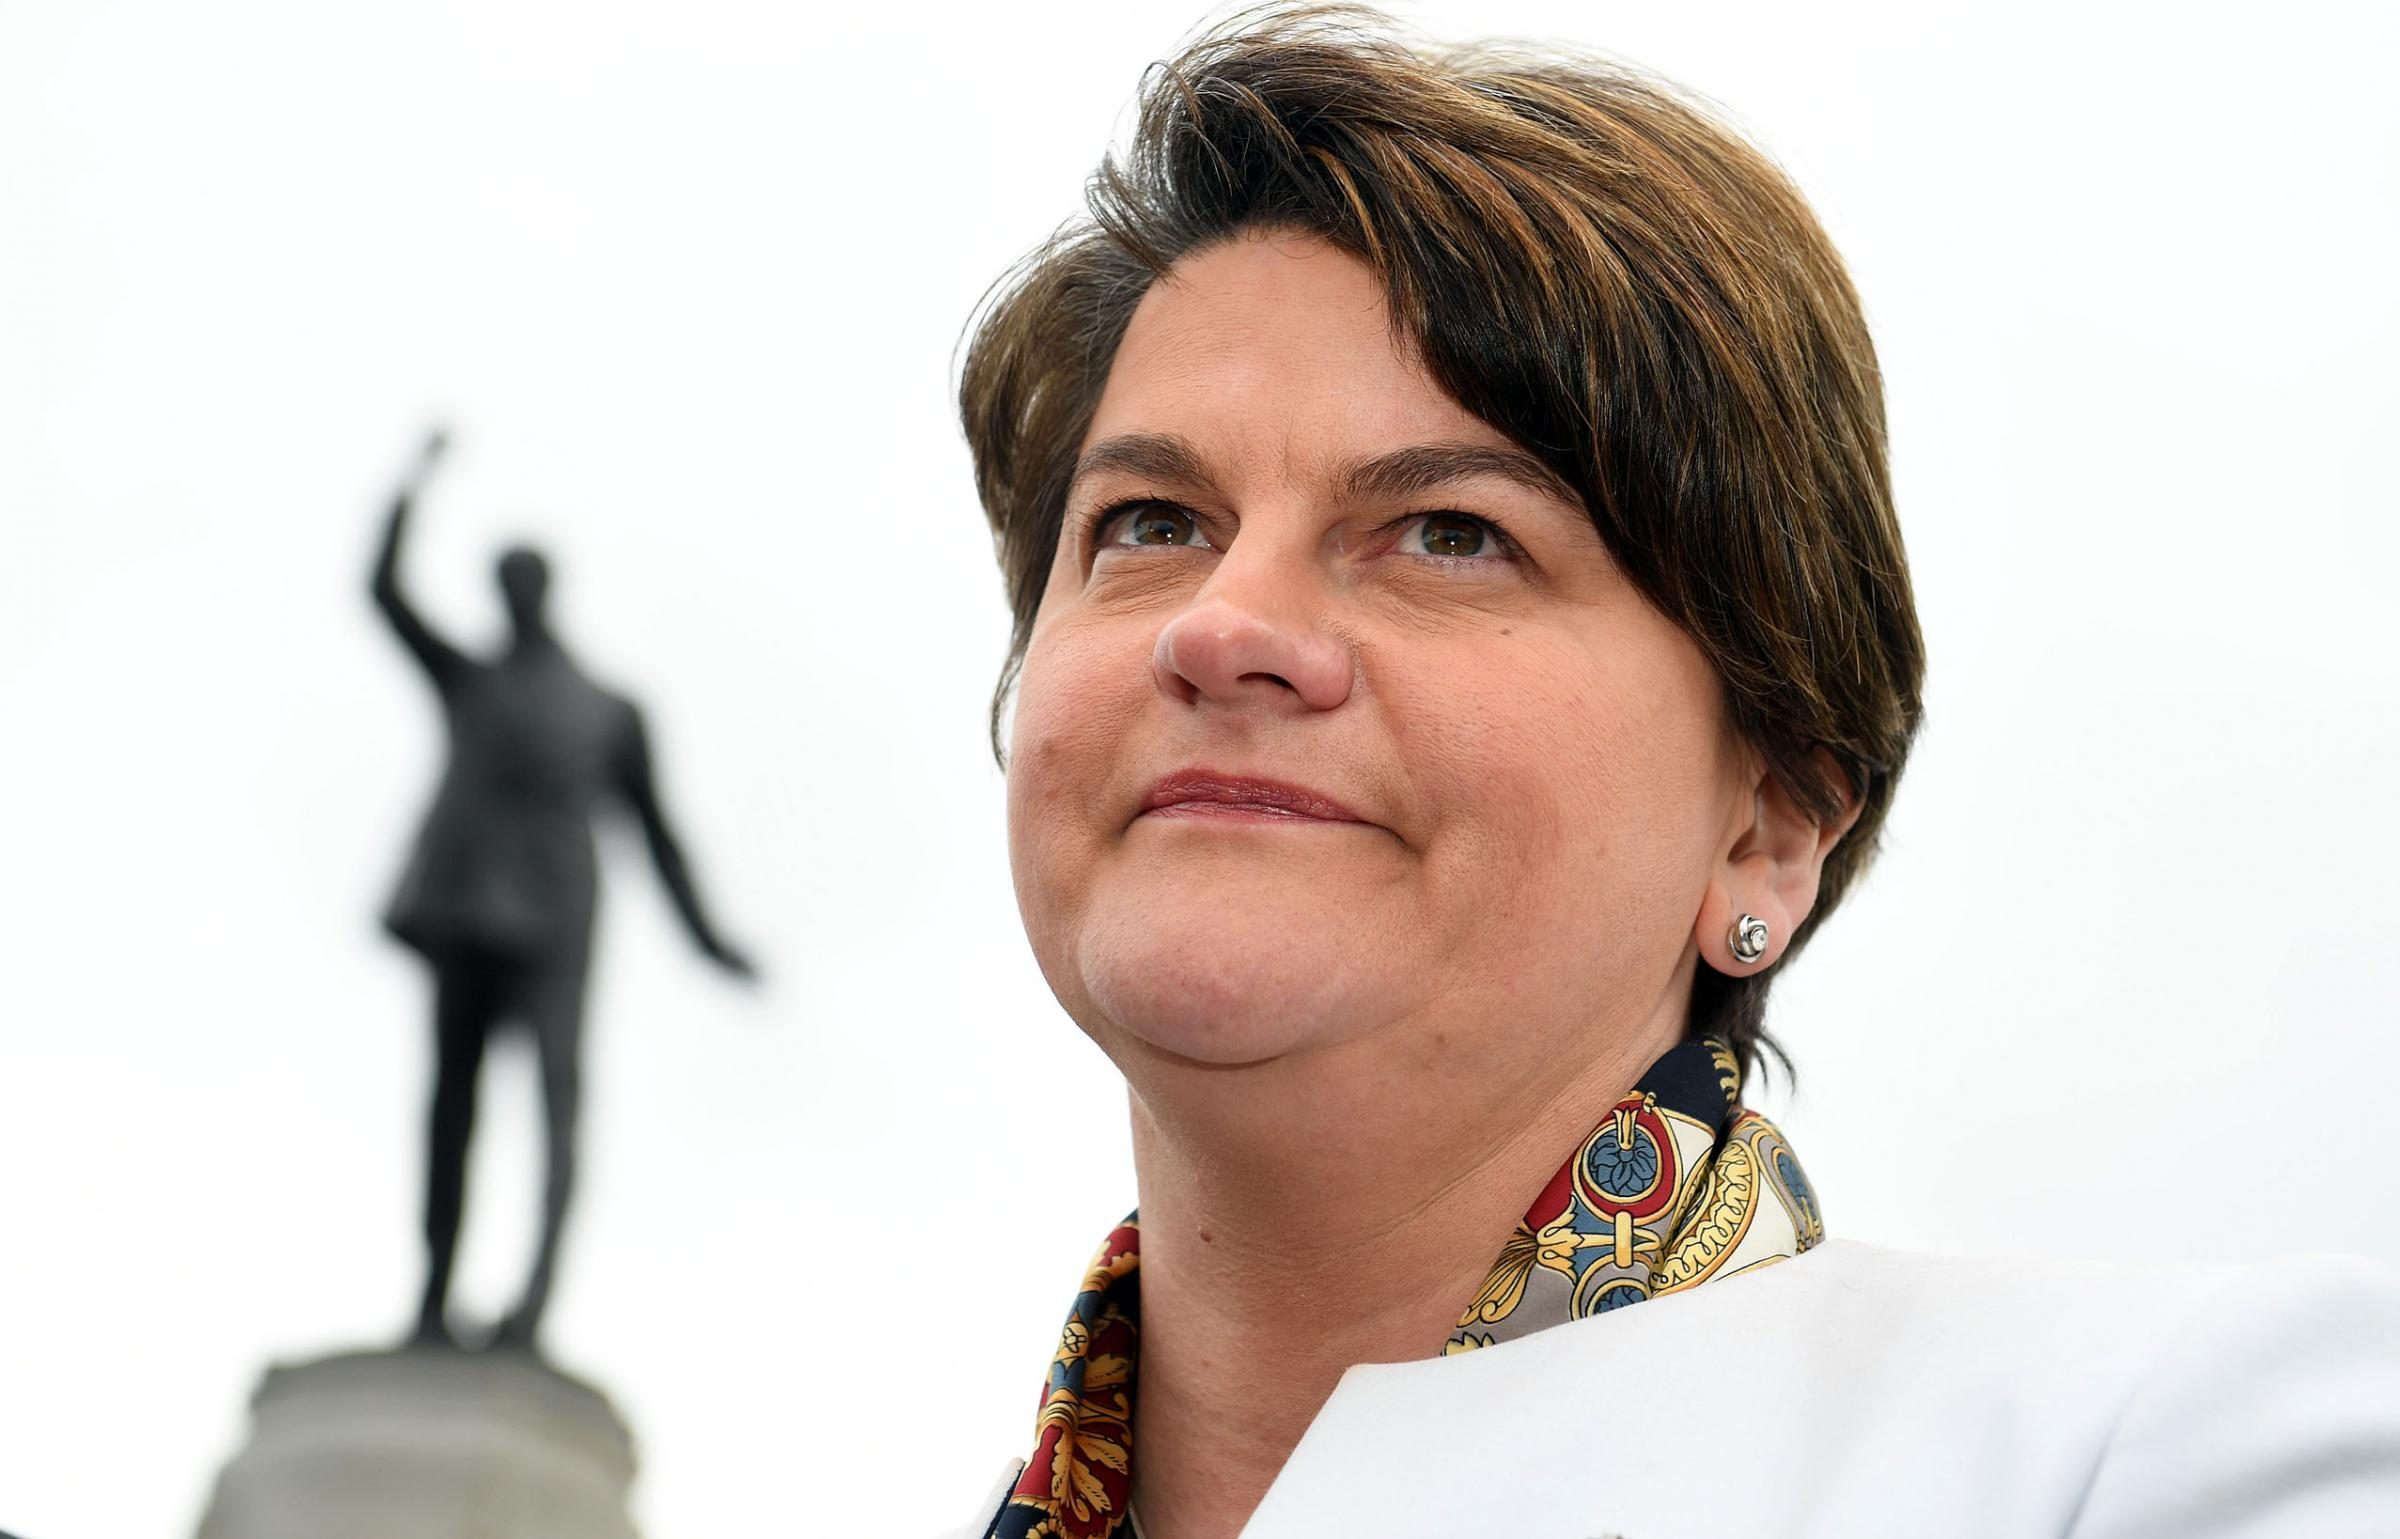 'Do Republicans want to make Northern Ireland work?' asks Arlene Foster